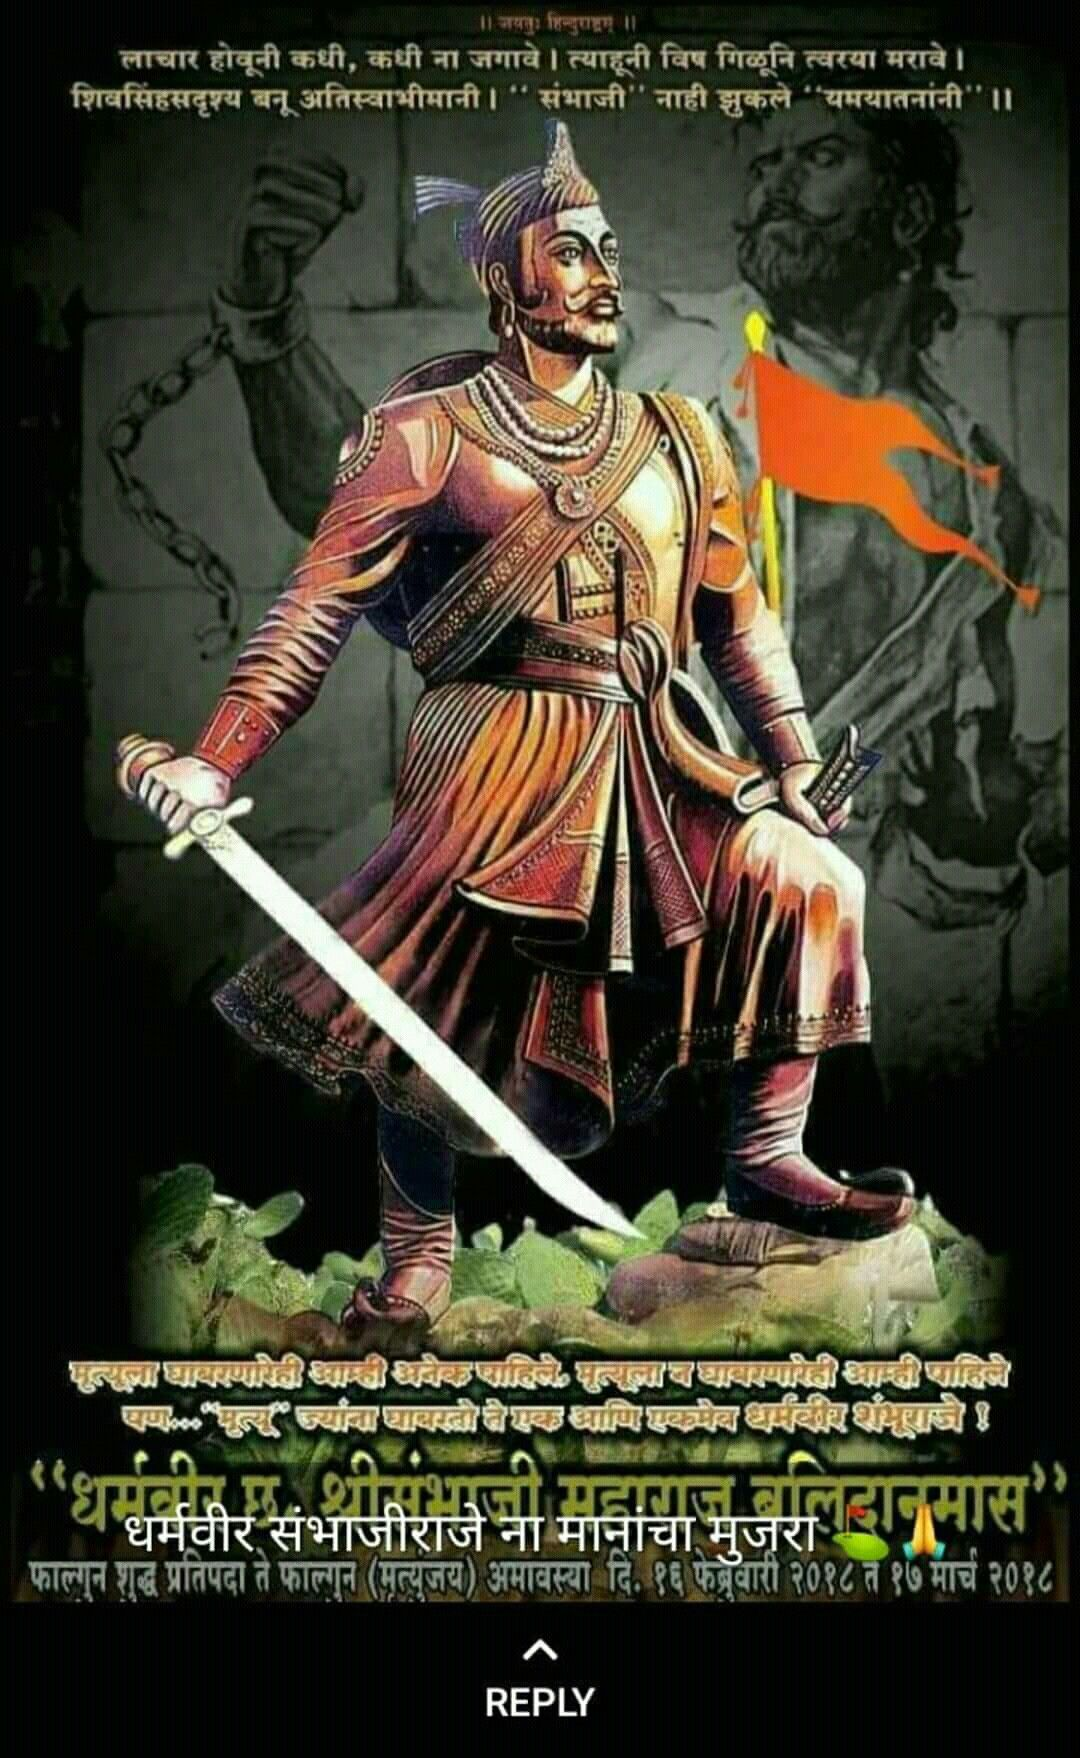 Chatrapati Sambhaji Maharaj Prithviraj Chauhan, Shivaji - Sambhaji Maharaj , HD Wallpaper & Backgrounds